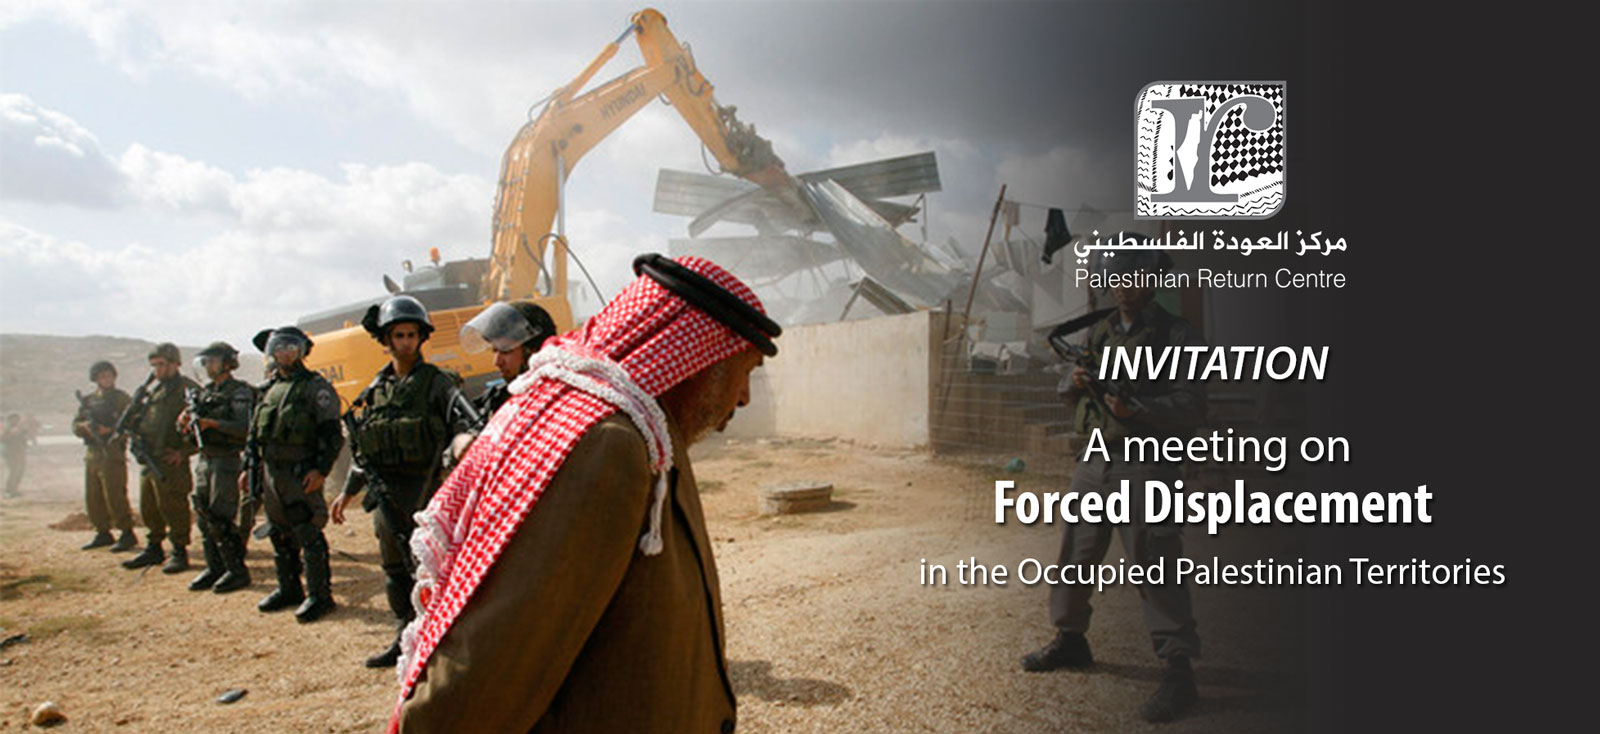 Invitation to a Meeting on: Forced Displacement in the Occupied Palestinian Territories